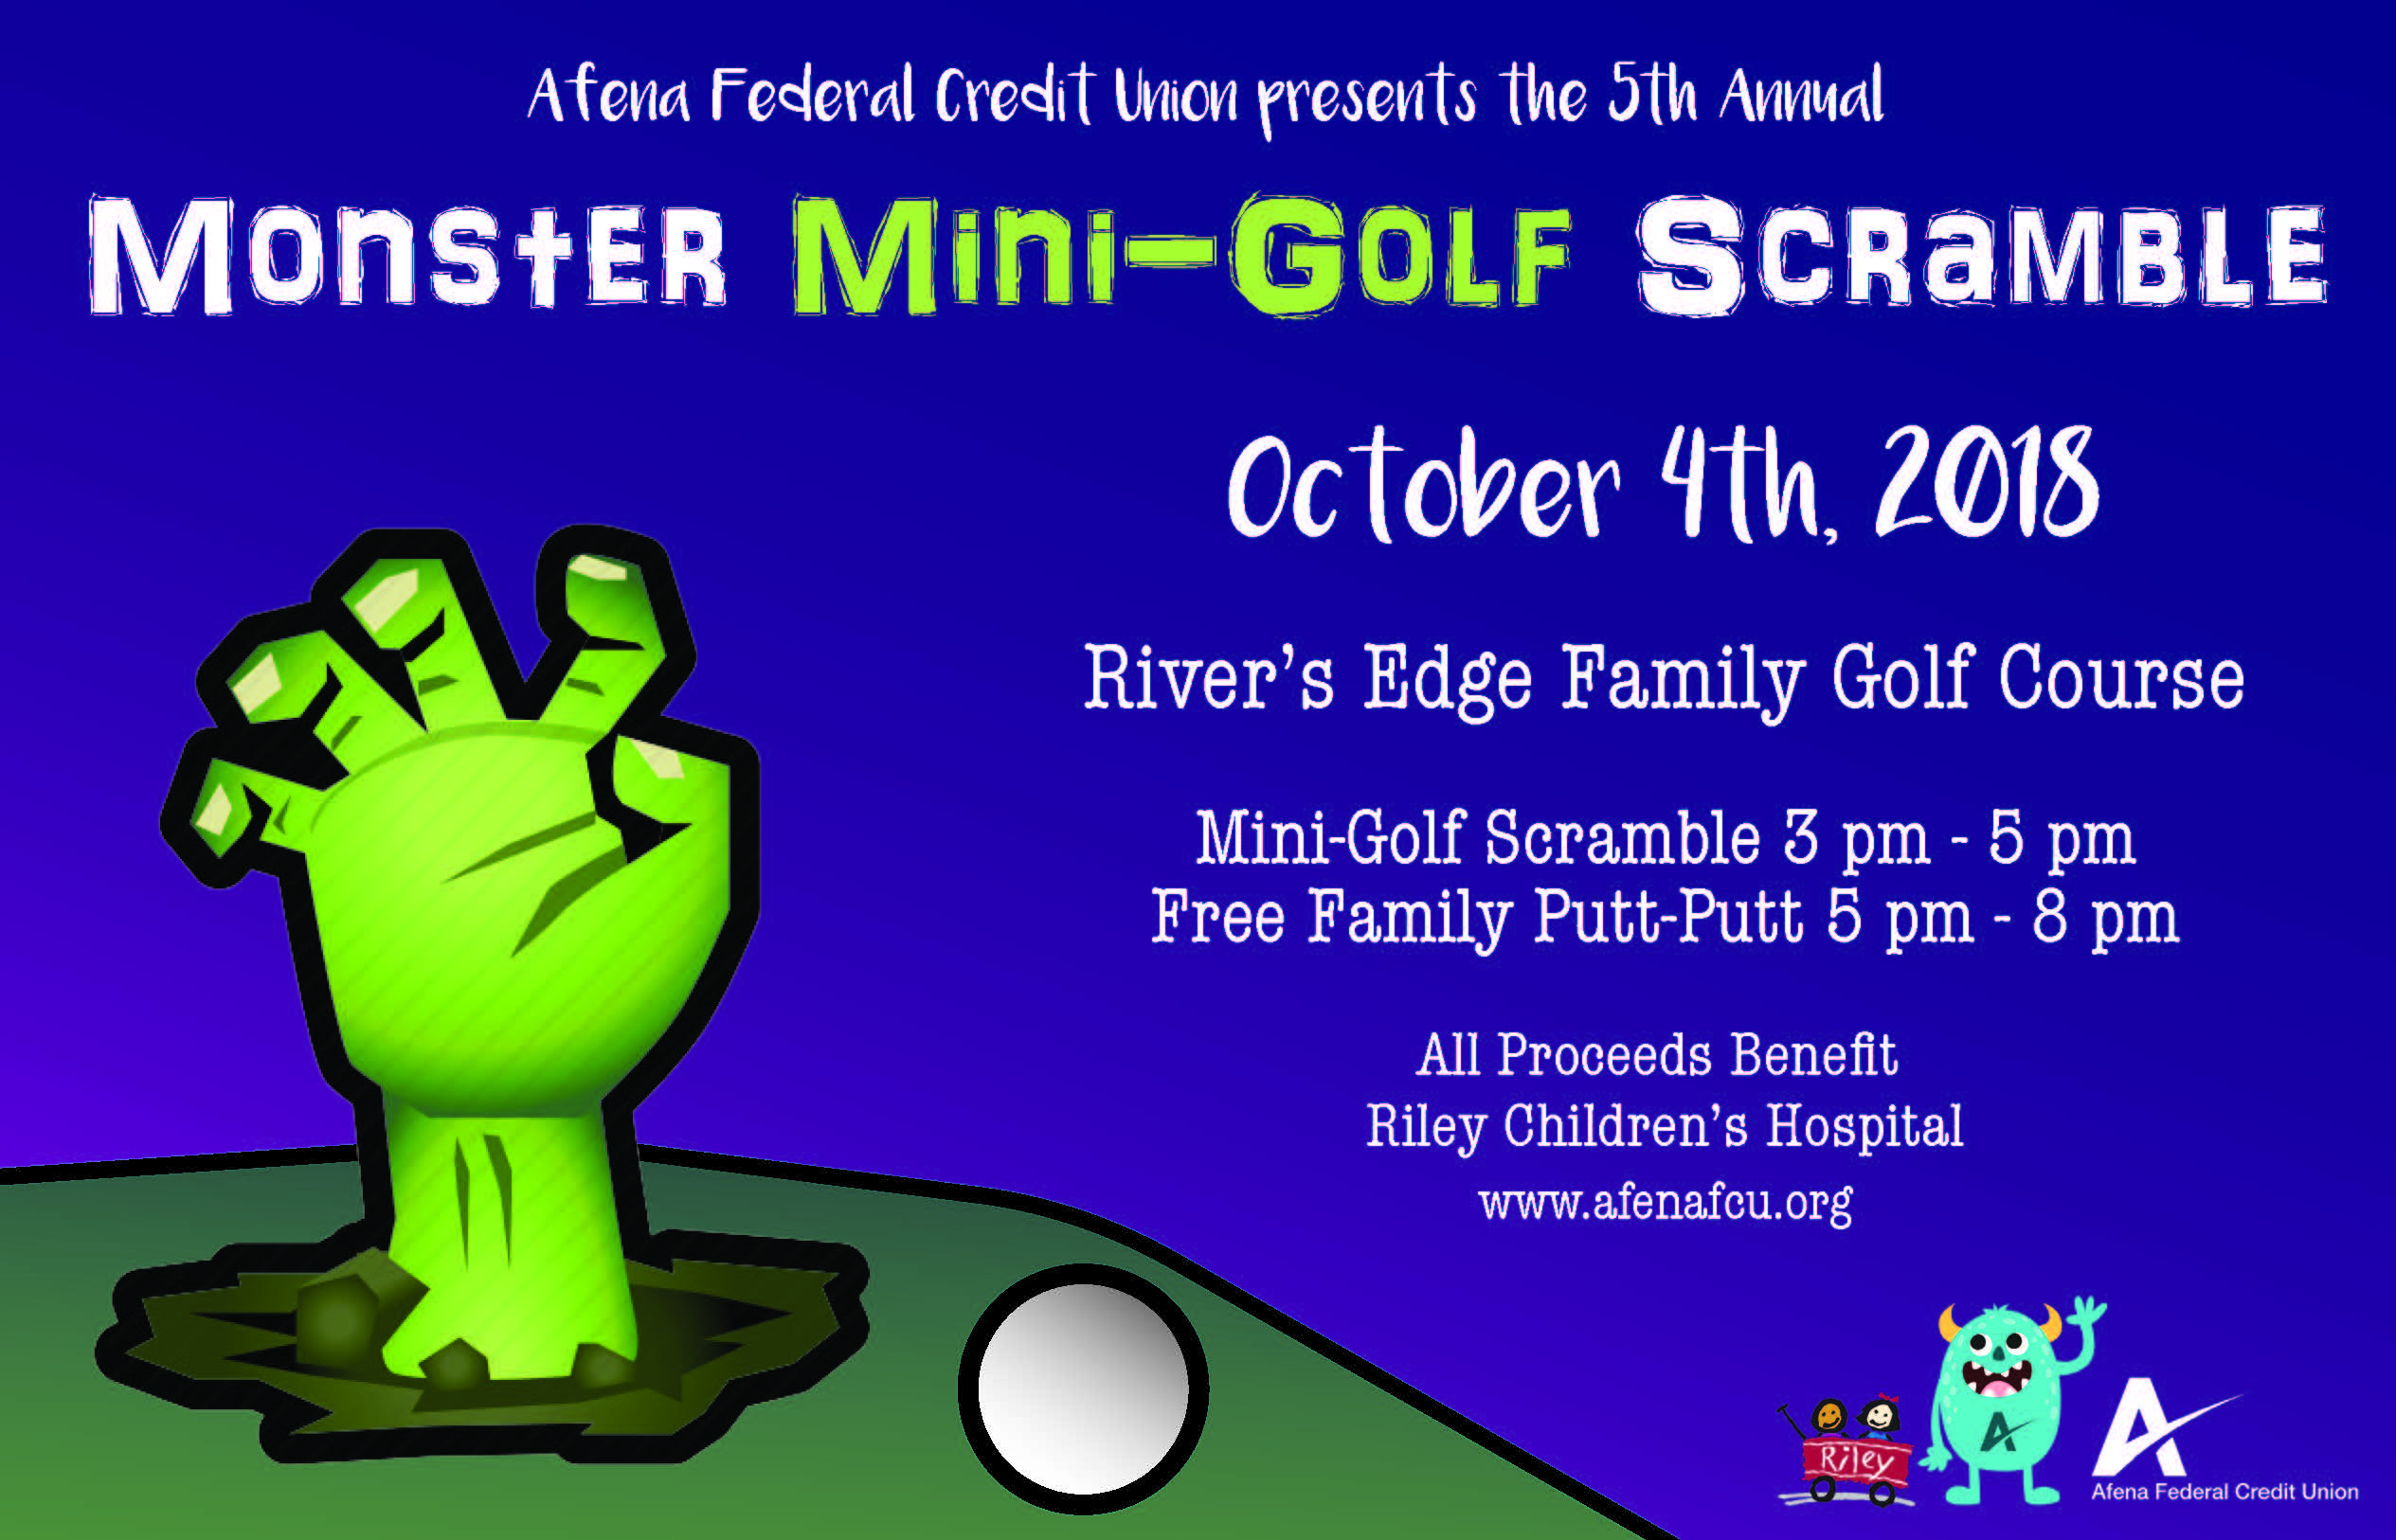 Afena Federal Credit Union presents the 5th Annual Monster Mini-Golf Scramble October 4th, 2018 River's Edge Family Golf Course Mini-Golf Scramble 3 pm-5 pm Free Family Putt-Putt 5 pm - 8 pm All Proceeds Benefit Riley Children's Hospital www.afenafcu.rog